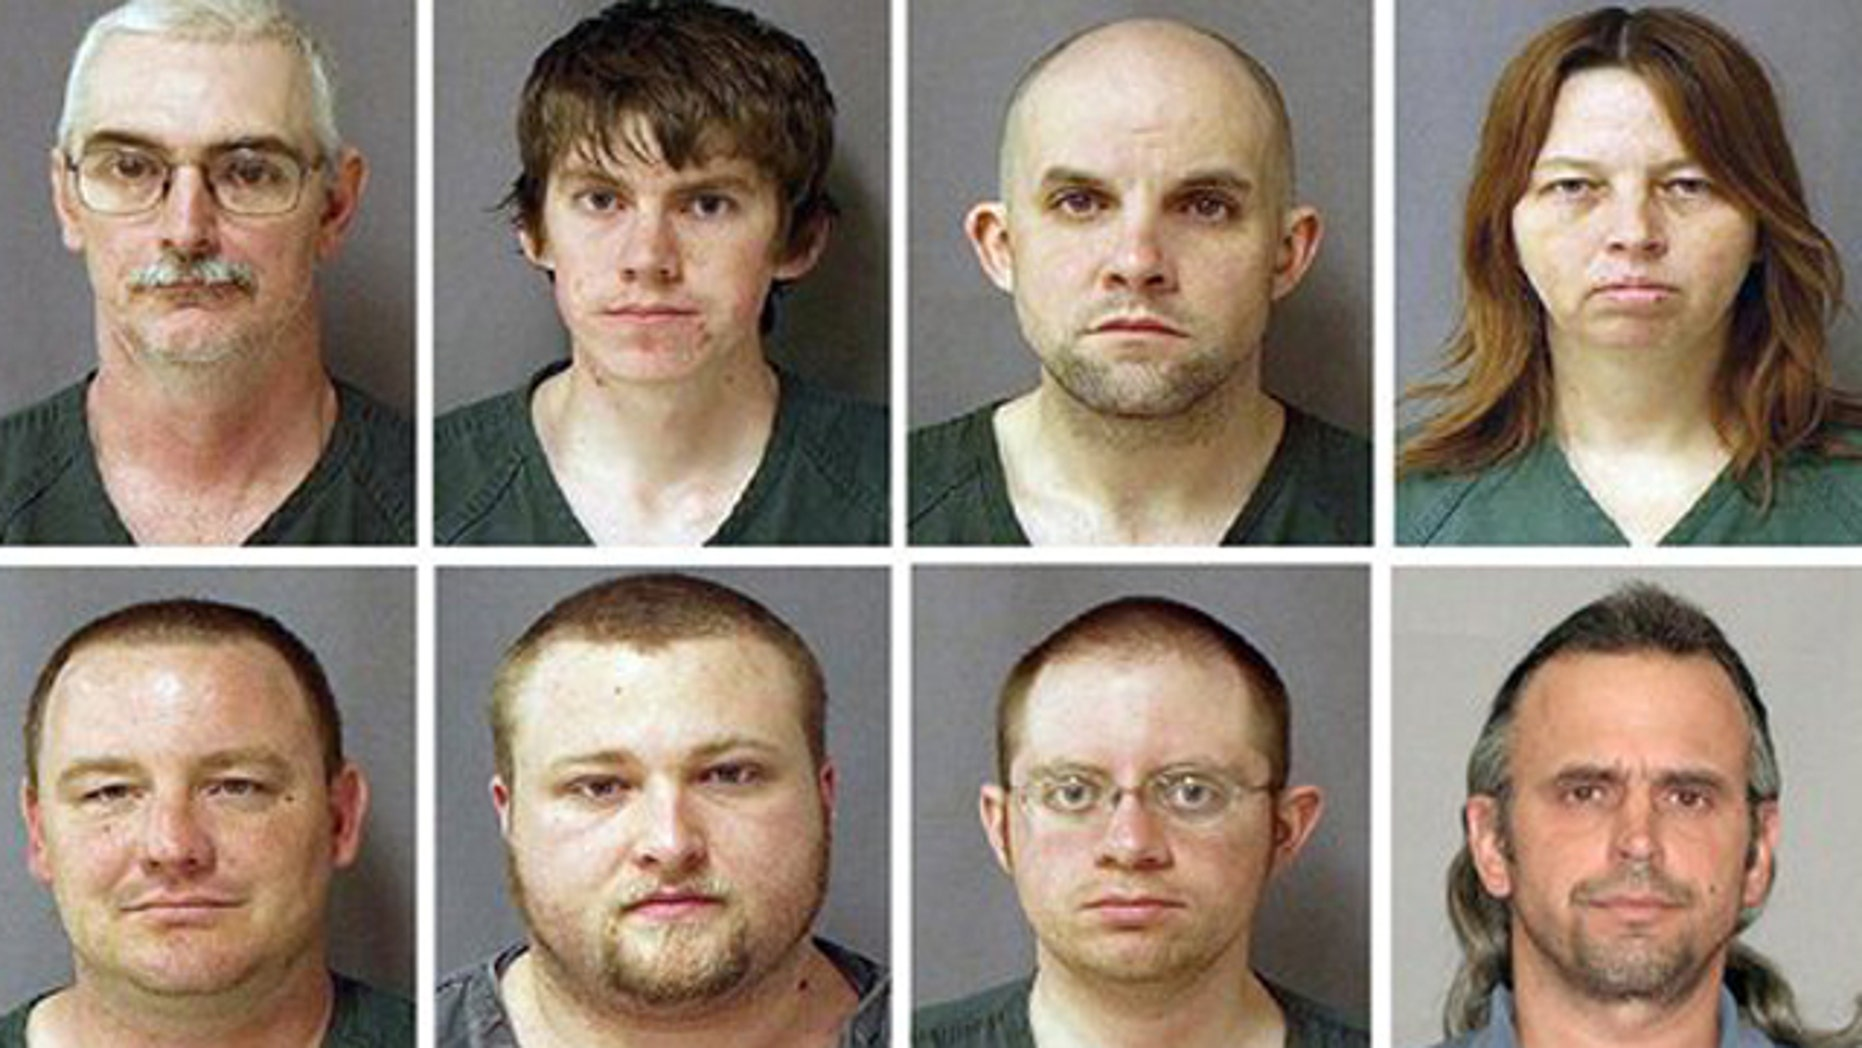 March 29, 2010: This combo of eight photos provided by the U.S. Marshals Service on shows from top left, David Brian Stone Sr., 44, of Clayton, Mich,; David Brian Stone Jr. of Adrian, Mich,; Jacob Ward, 33, of Huron, Ohio; Tina Mae Stone and bottom row from left, Michael David Meeks,  40, of Manchester, Mich,; Kristopher T. Sickles, 27, of Sandusky, Ohio; Joshua John Clough, 28, of Blissfield, Mich.; and Thomas William Piatek, 46, of Whiting, Ind., suspects tied to Hutaree, a Christian militia.